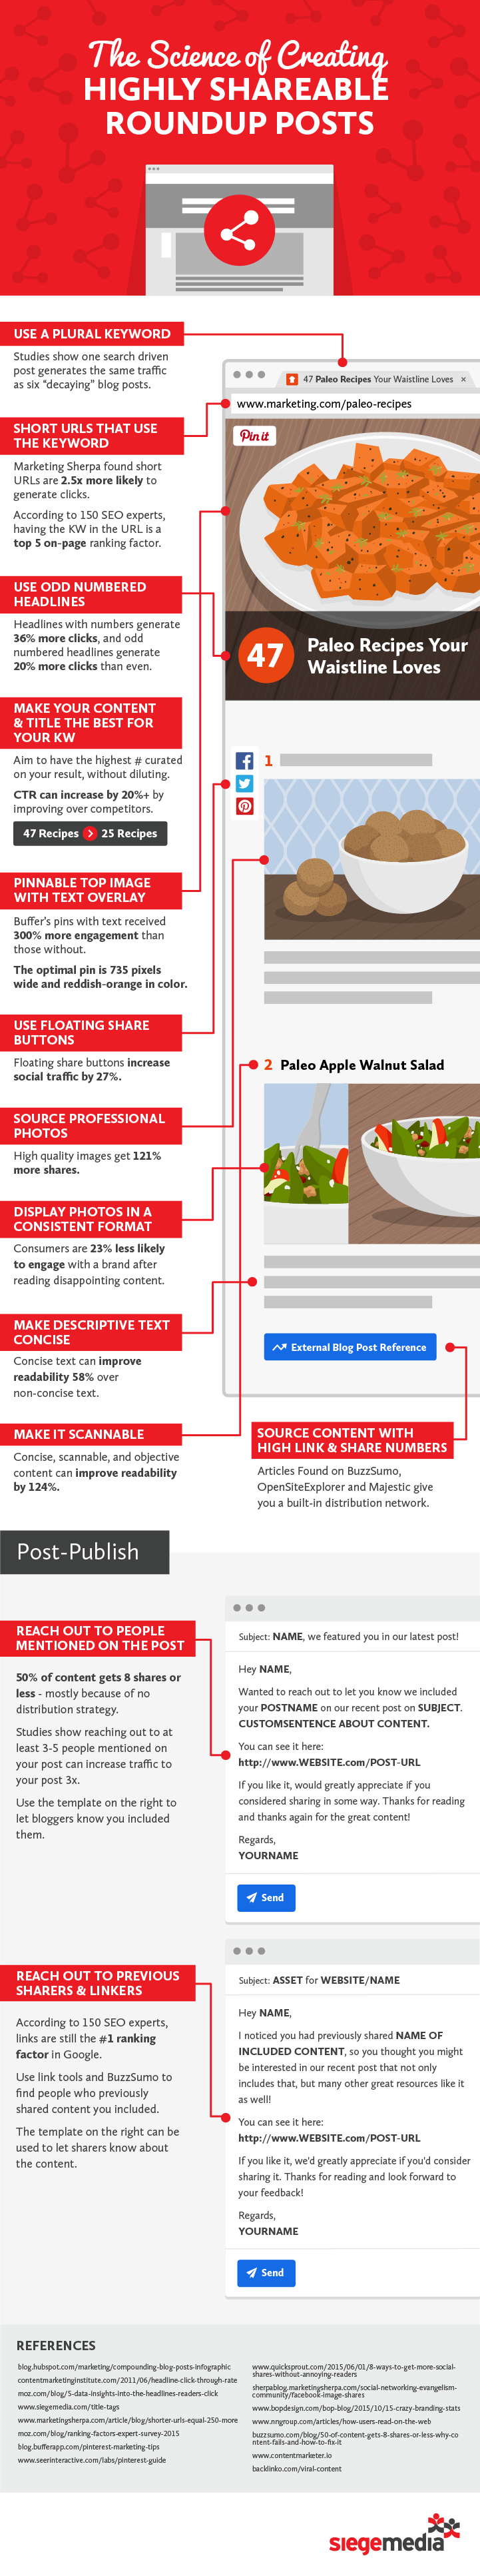 The Science of Creating Highly Shareable Roundup Posts